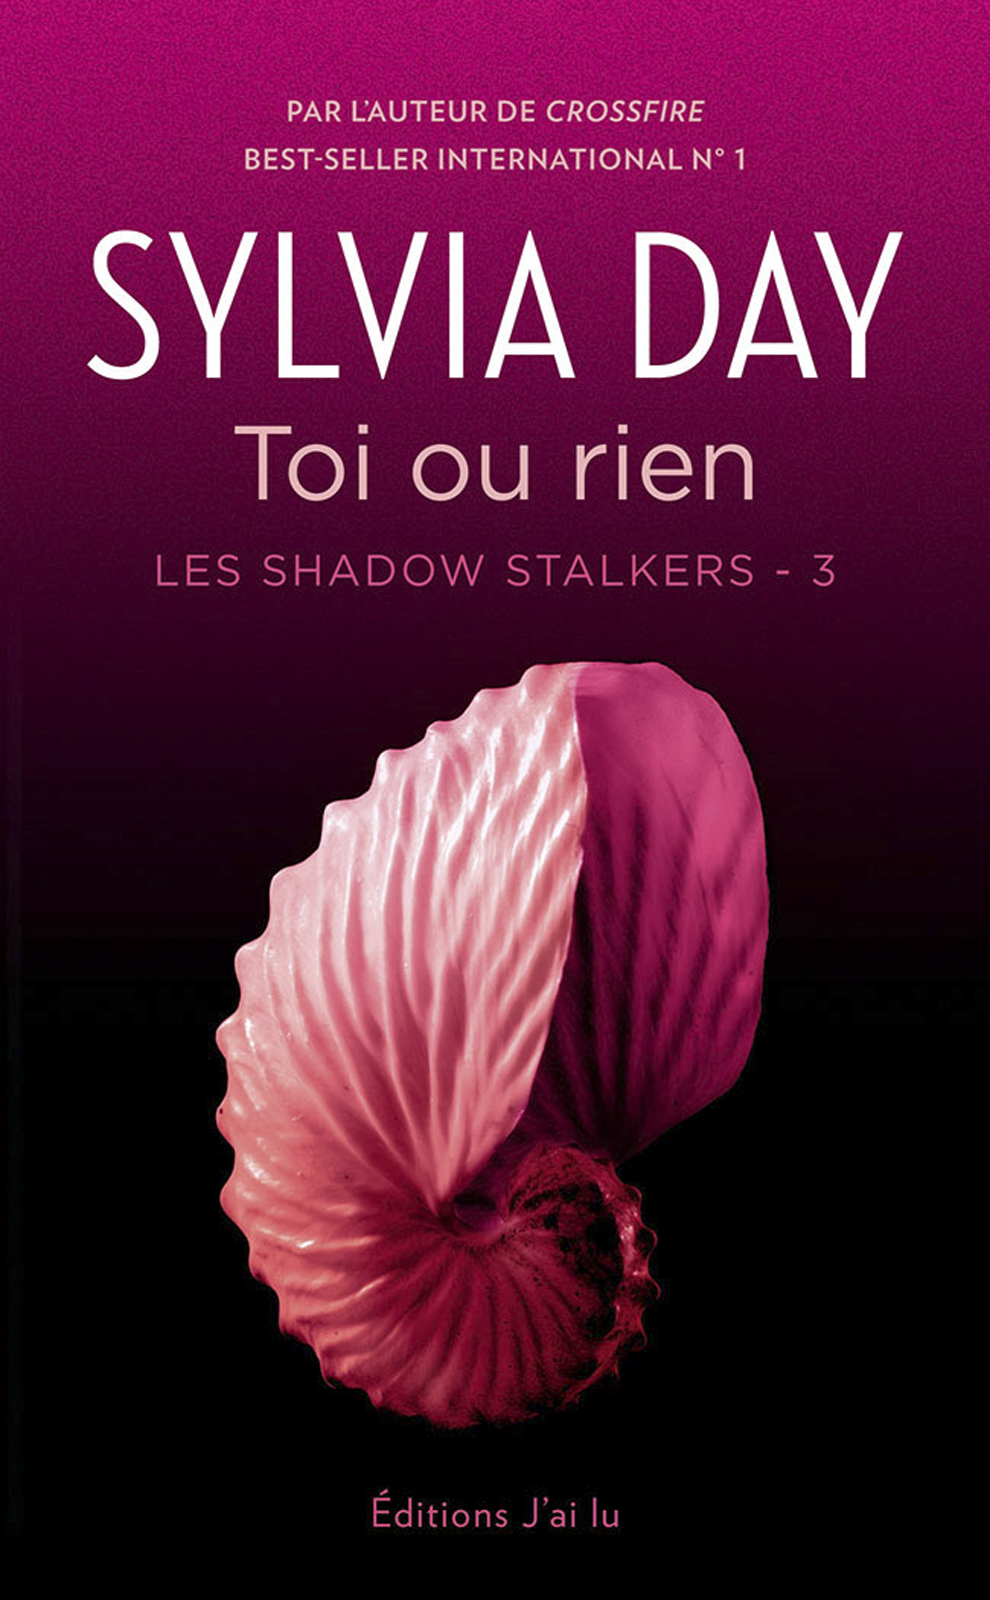 Les Shadow Stalkers (Tome 3) - Toi ou rien